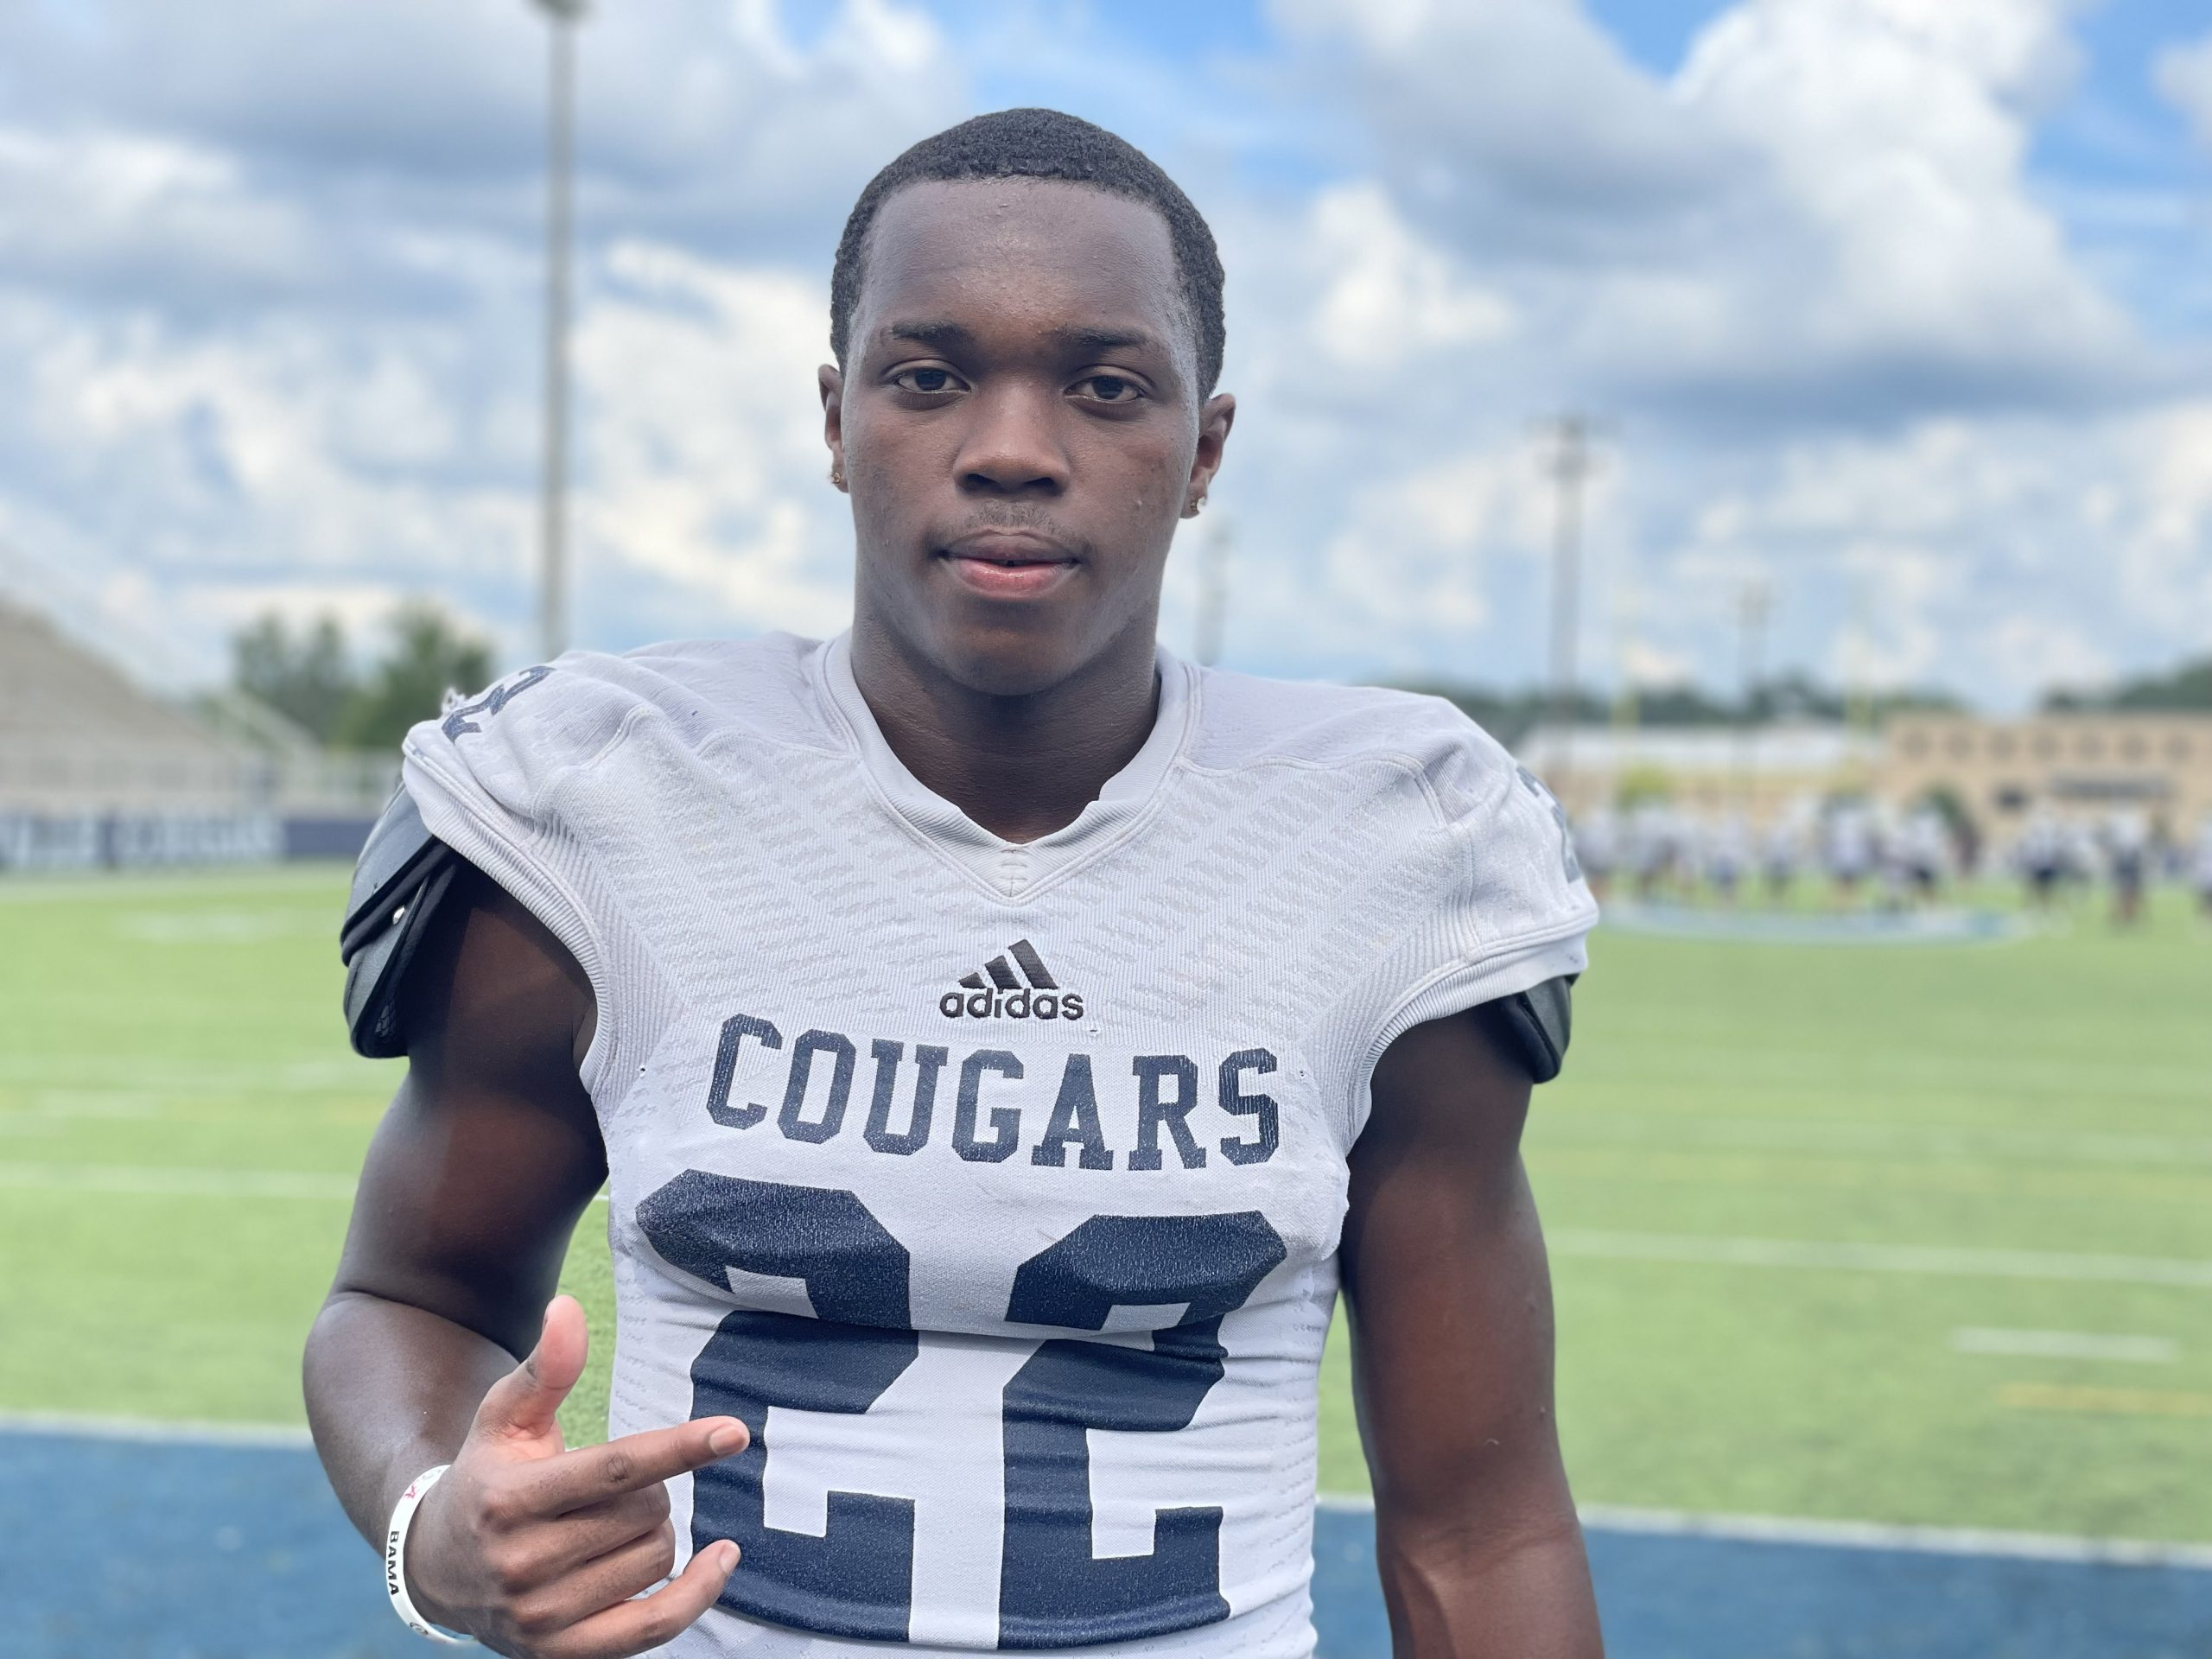 Clay-Chalkville's Osley making an impact for Cougars